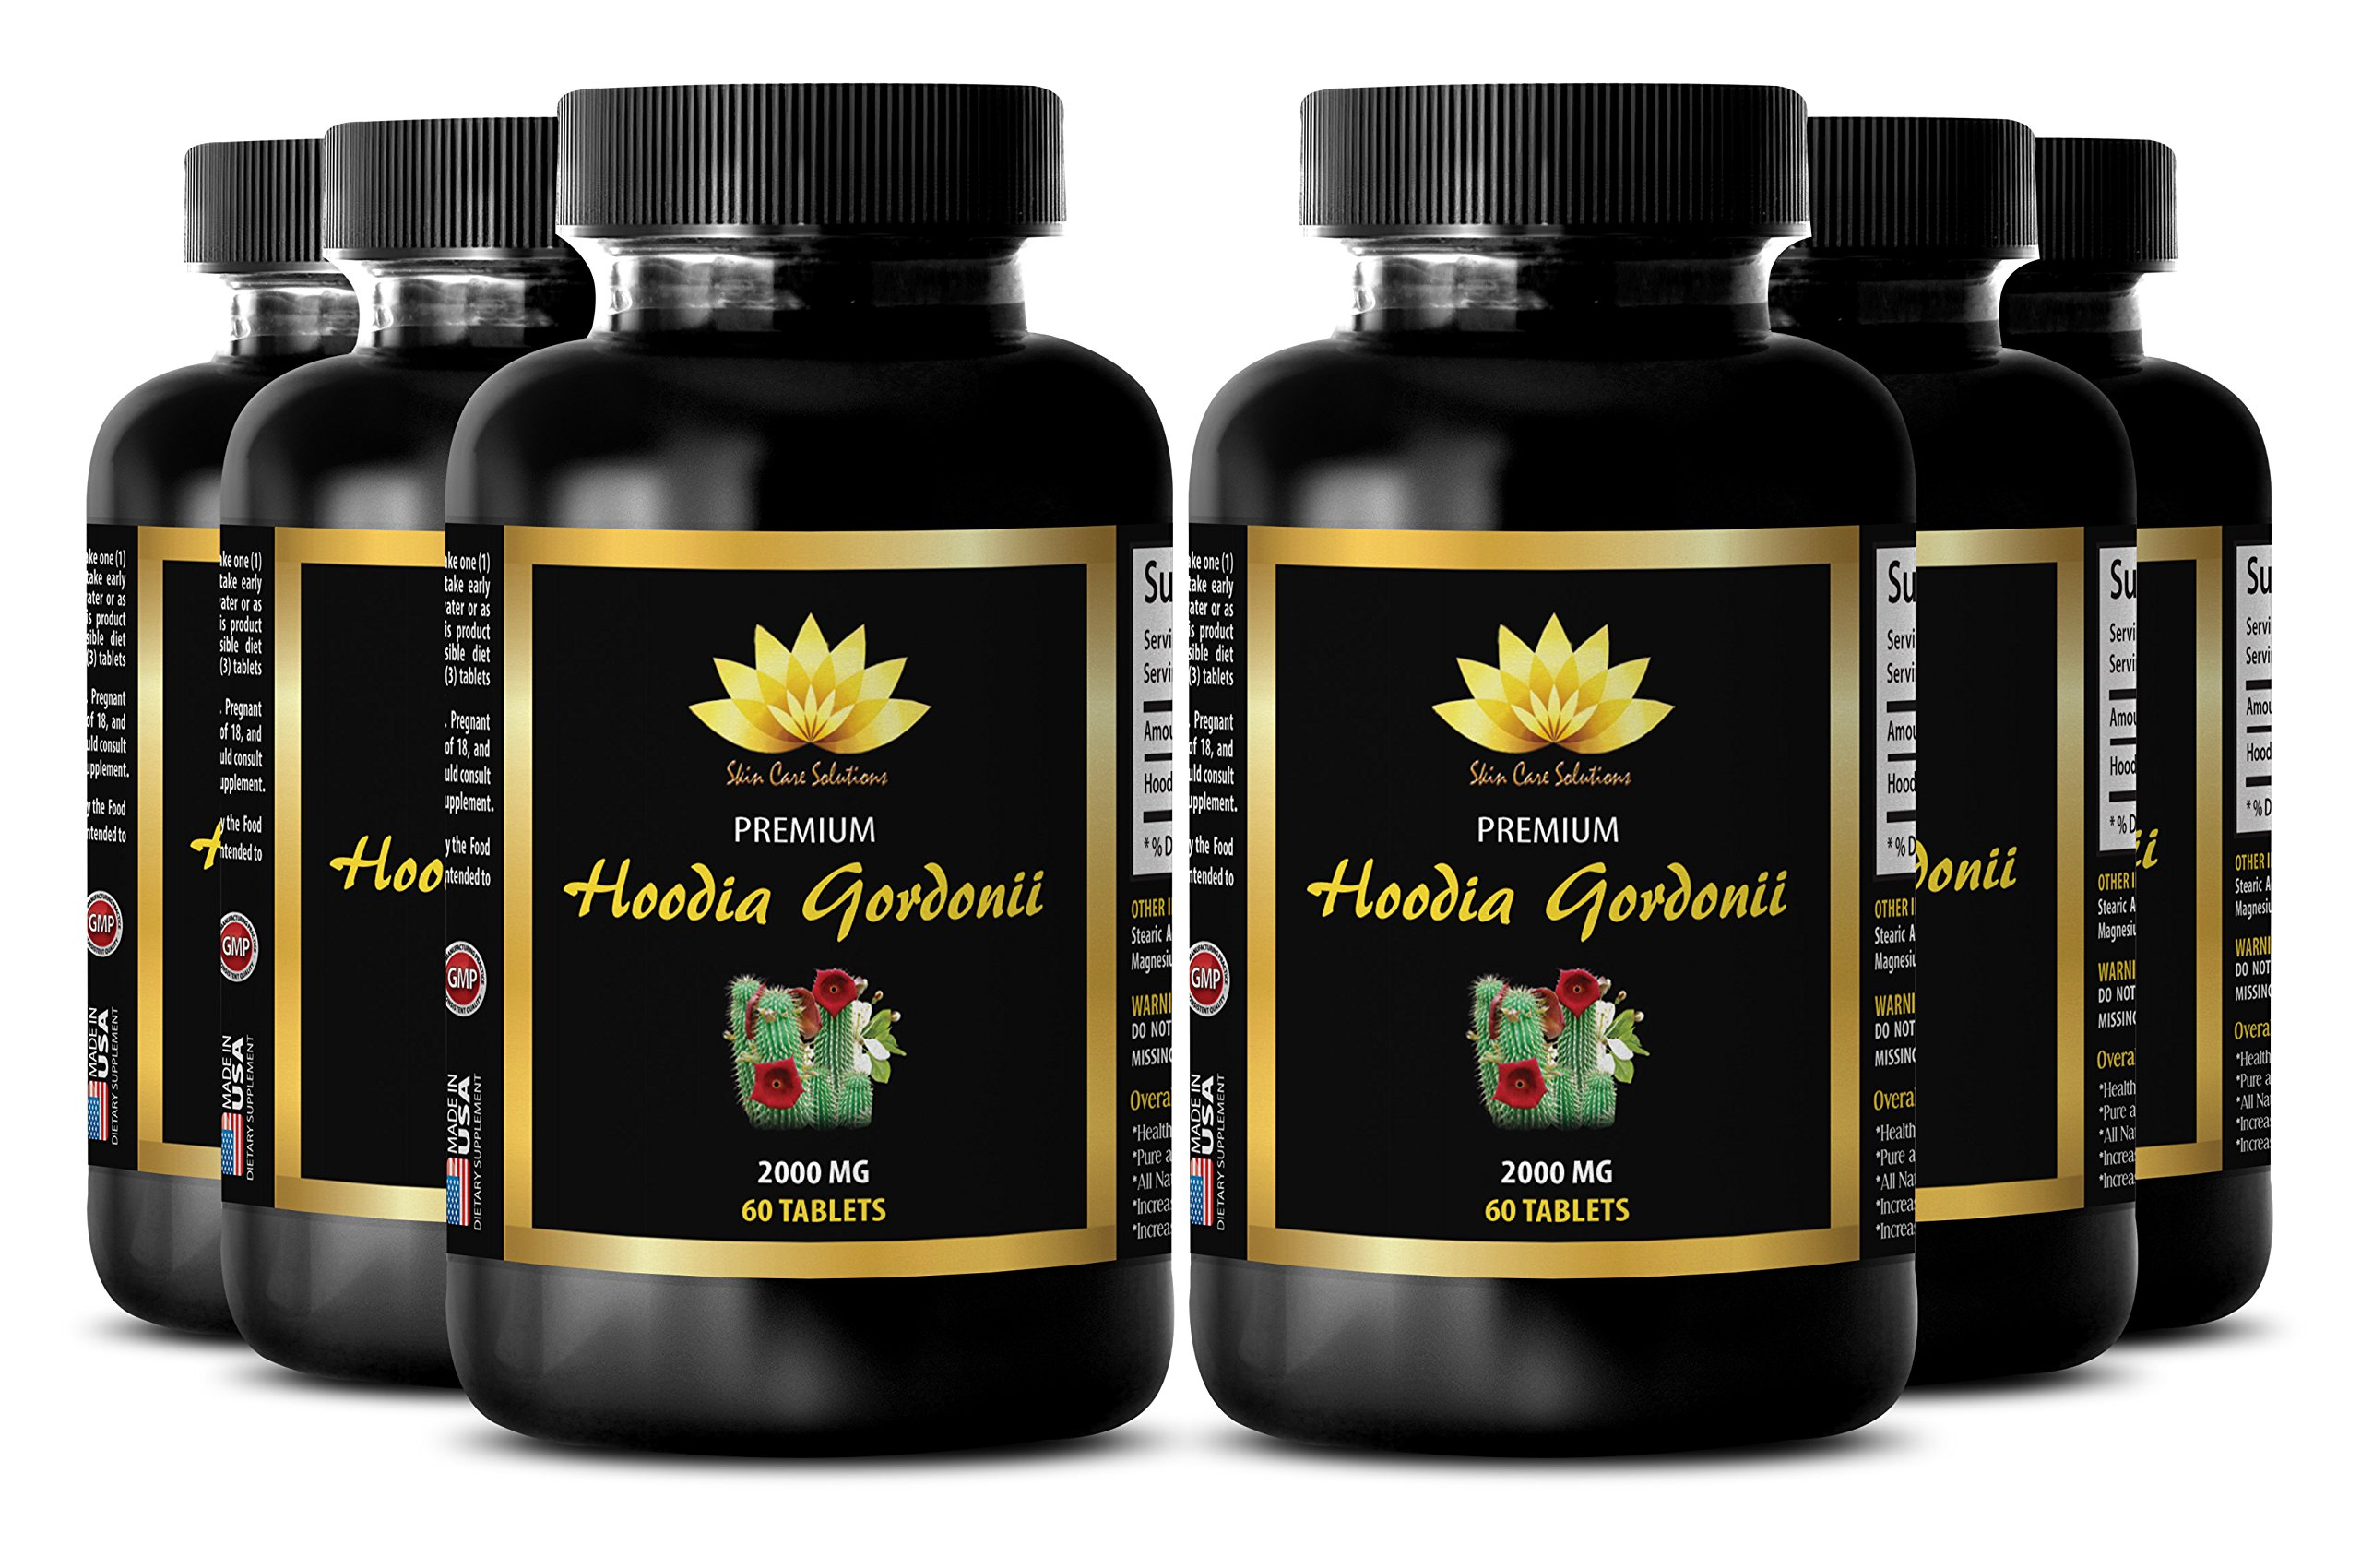 Burn fat while you sleep - HOODIA GORDONII EXTRACT 2000mg - Lose weight naturally - 6 Bottles 360 Tablets